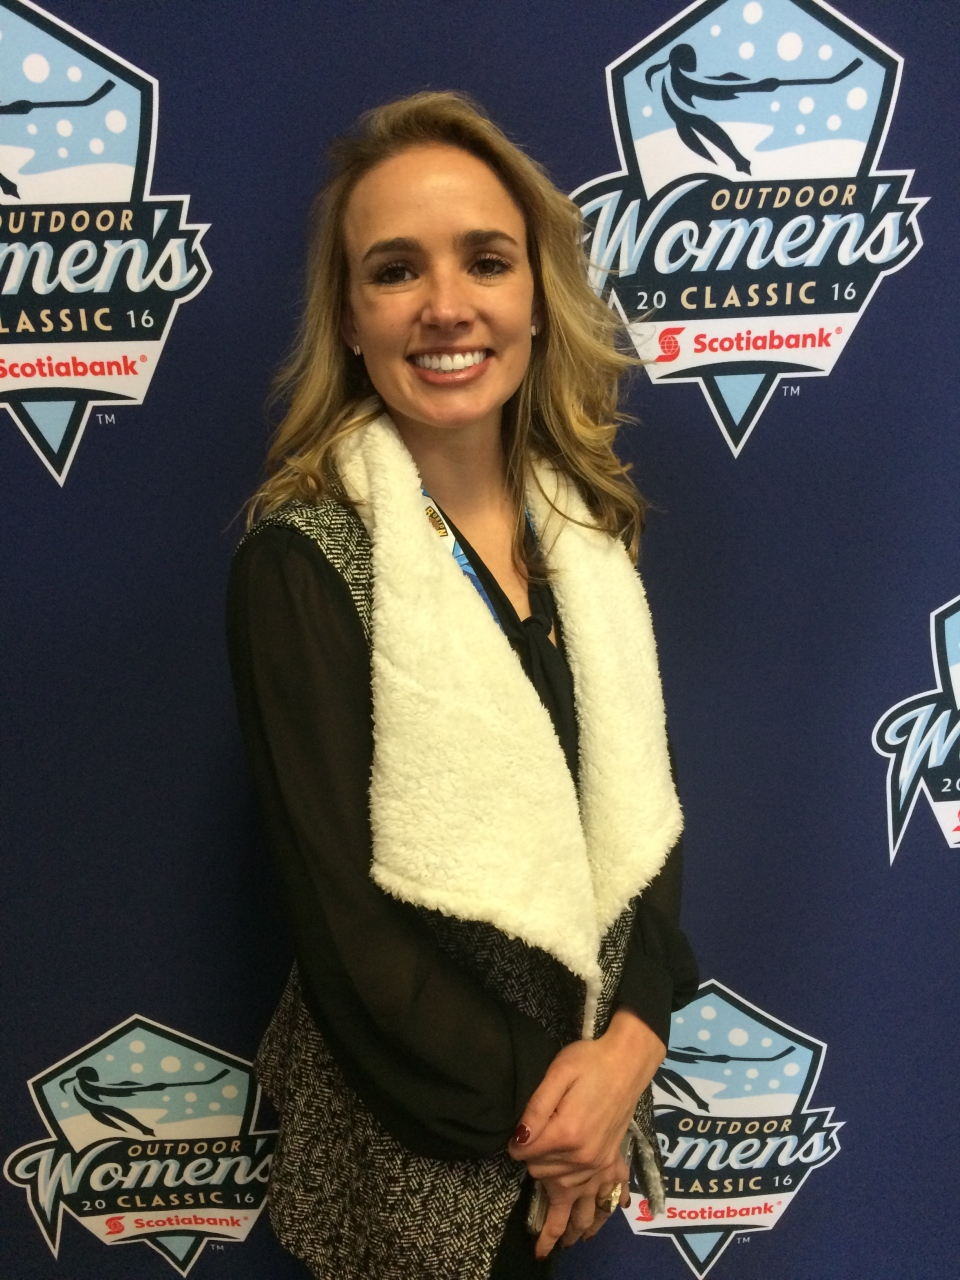 Dani Rylan is a former hockey player with the Northeastern Huskies women's ice hockey program. Rylan, together with Angela Ruggiero, launched the National Women's Hockey League in March 2015. (Photo: NWHL)